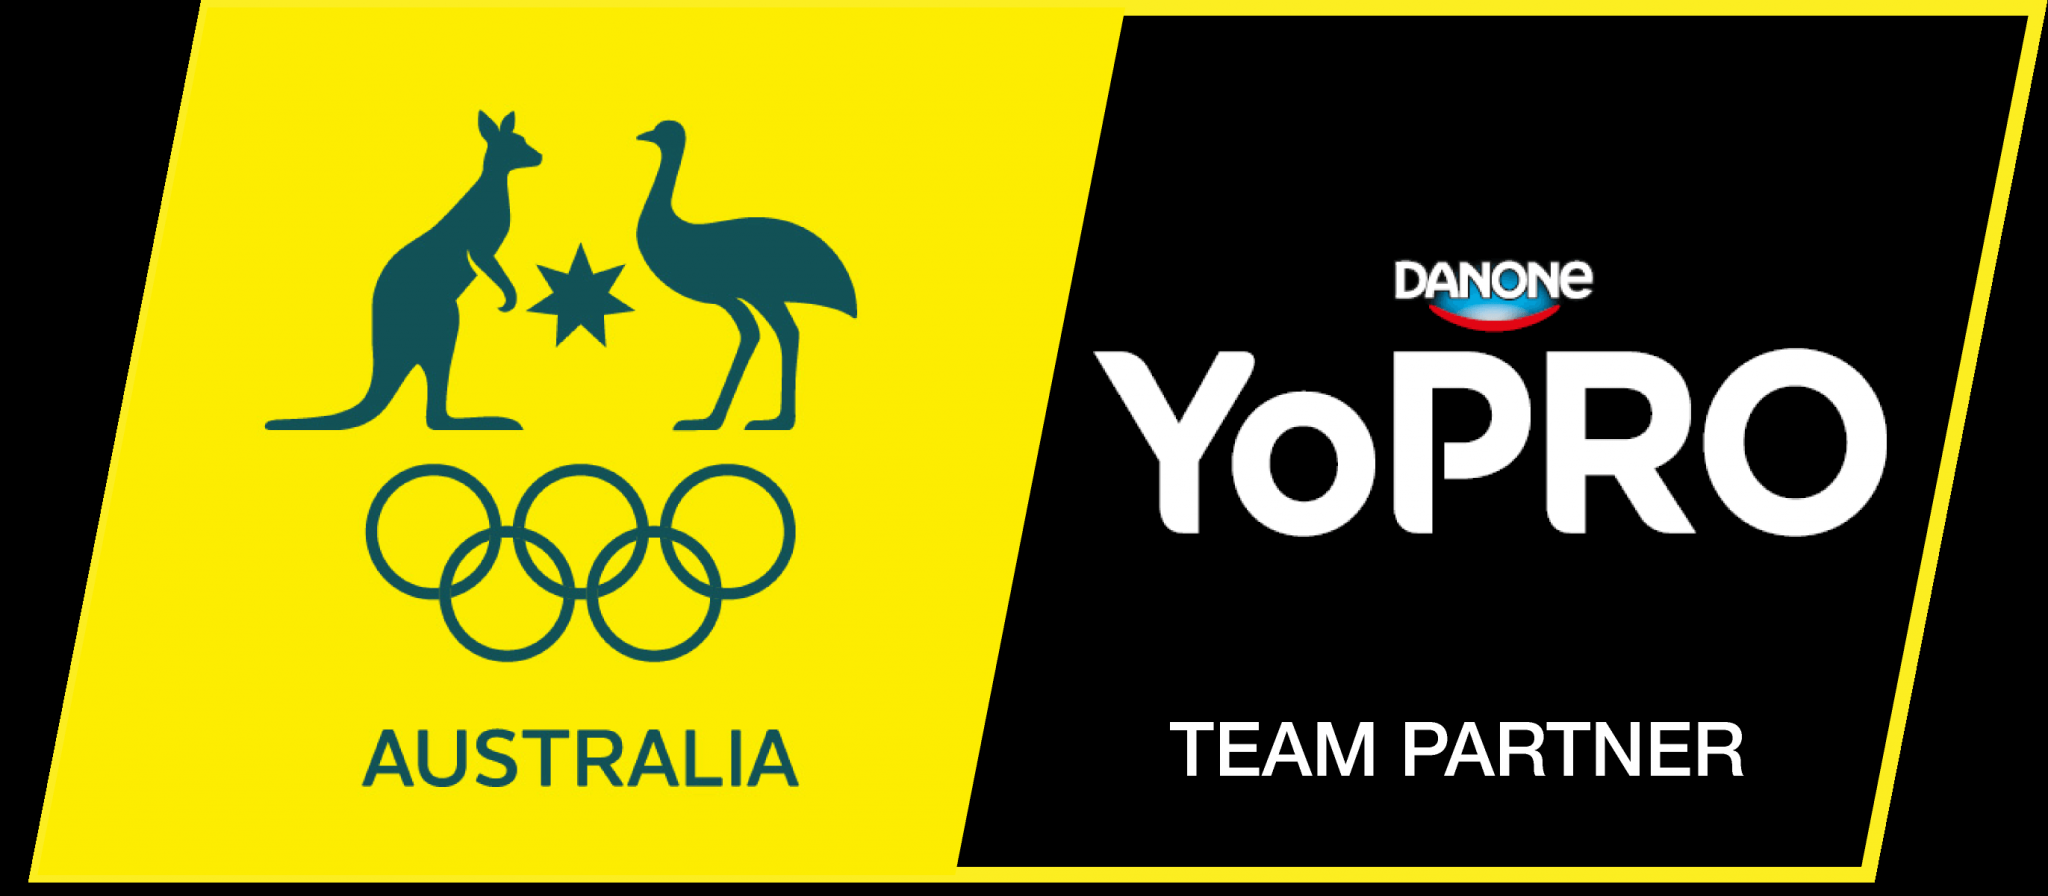 YoPRO named official partner of Australia's Tokyo 2020 Olympic team